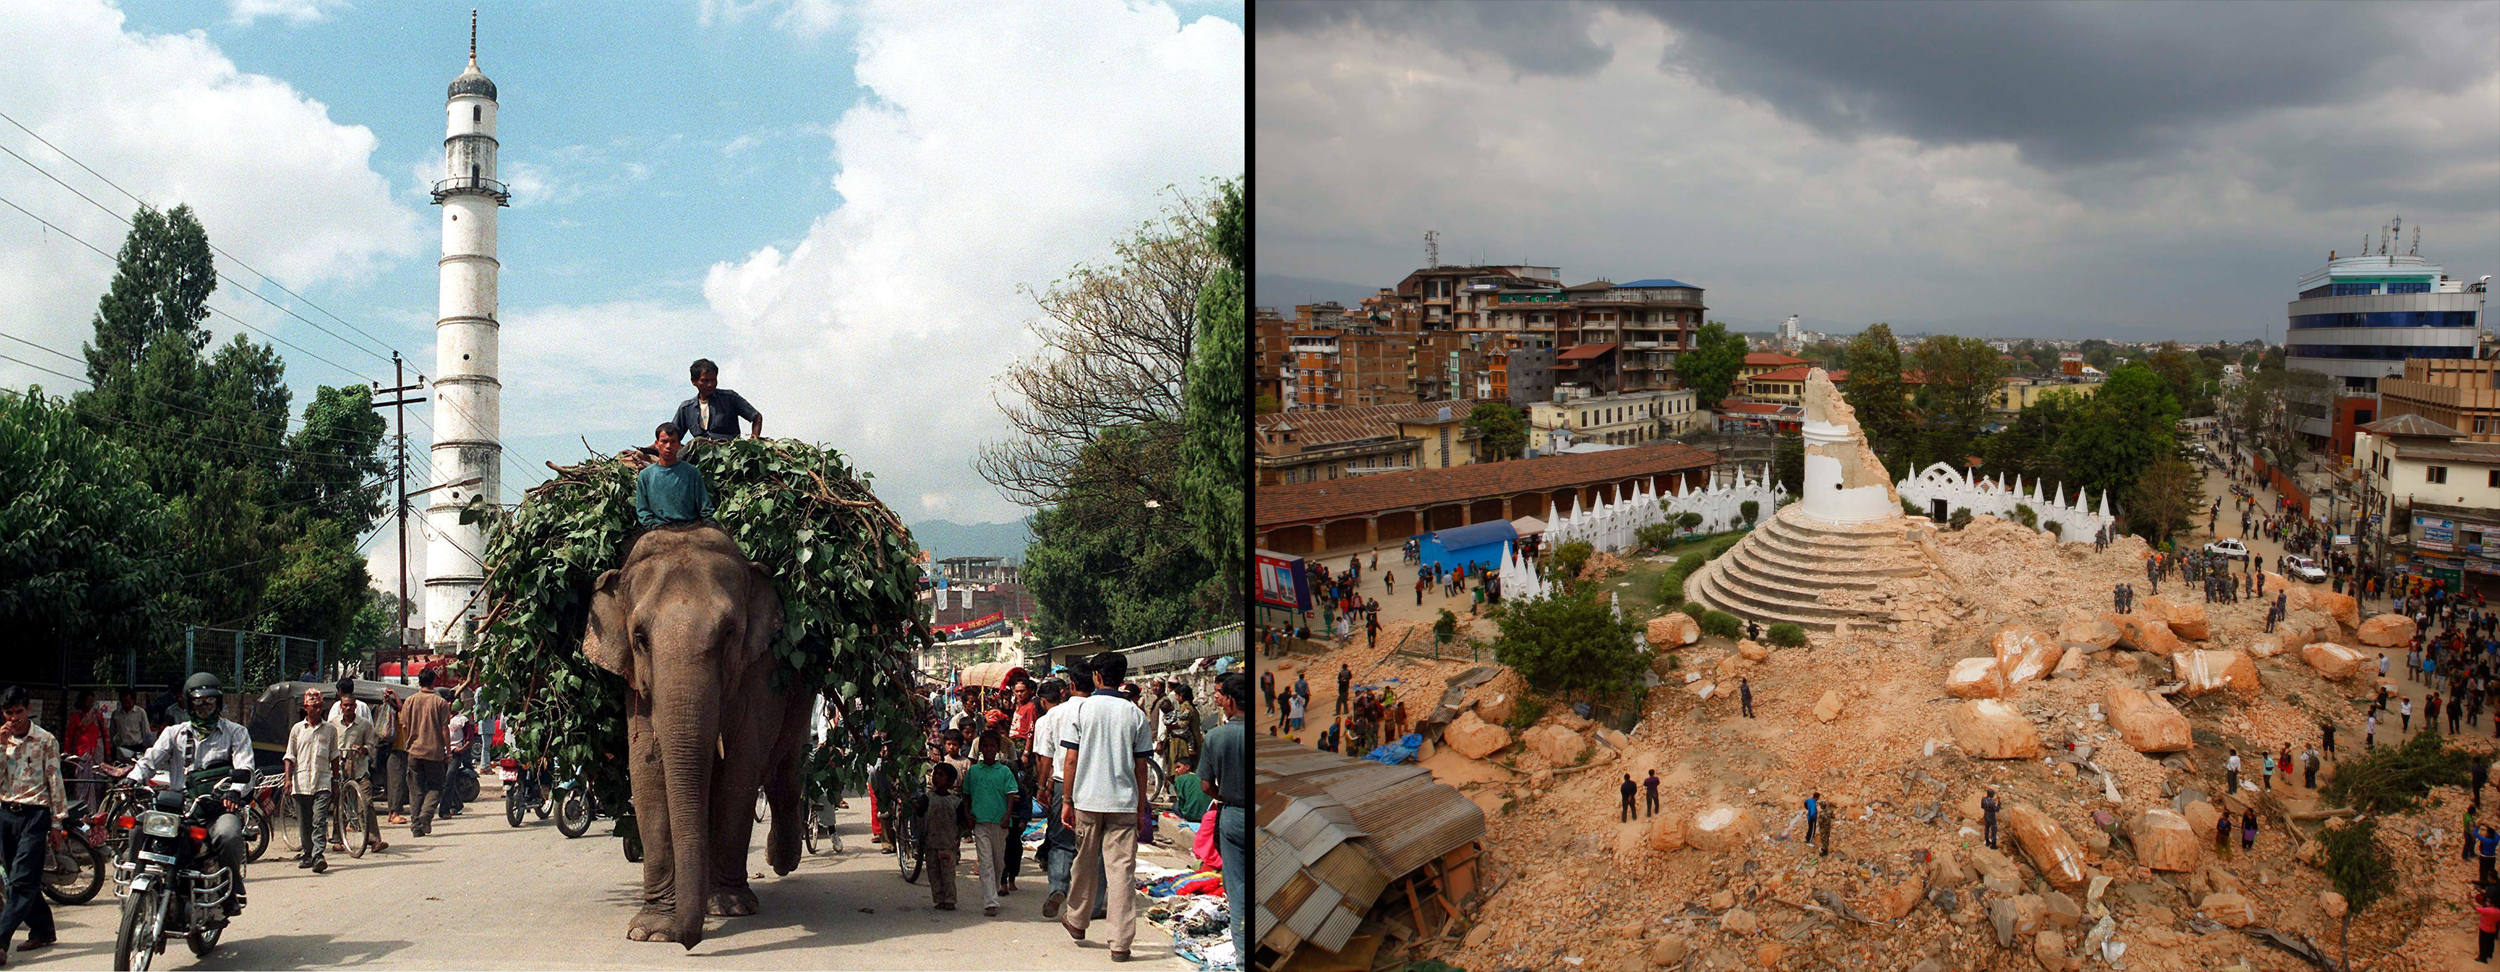 Shattered Historic Sites Could Ruin Nepal Economy